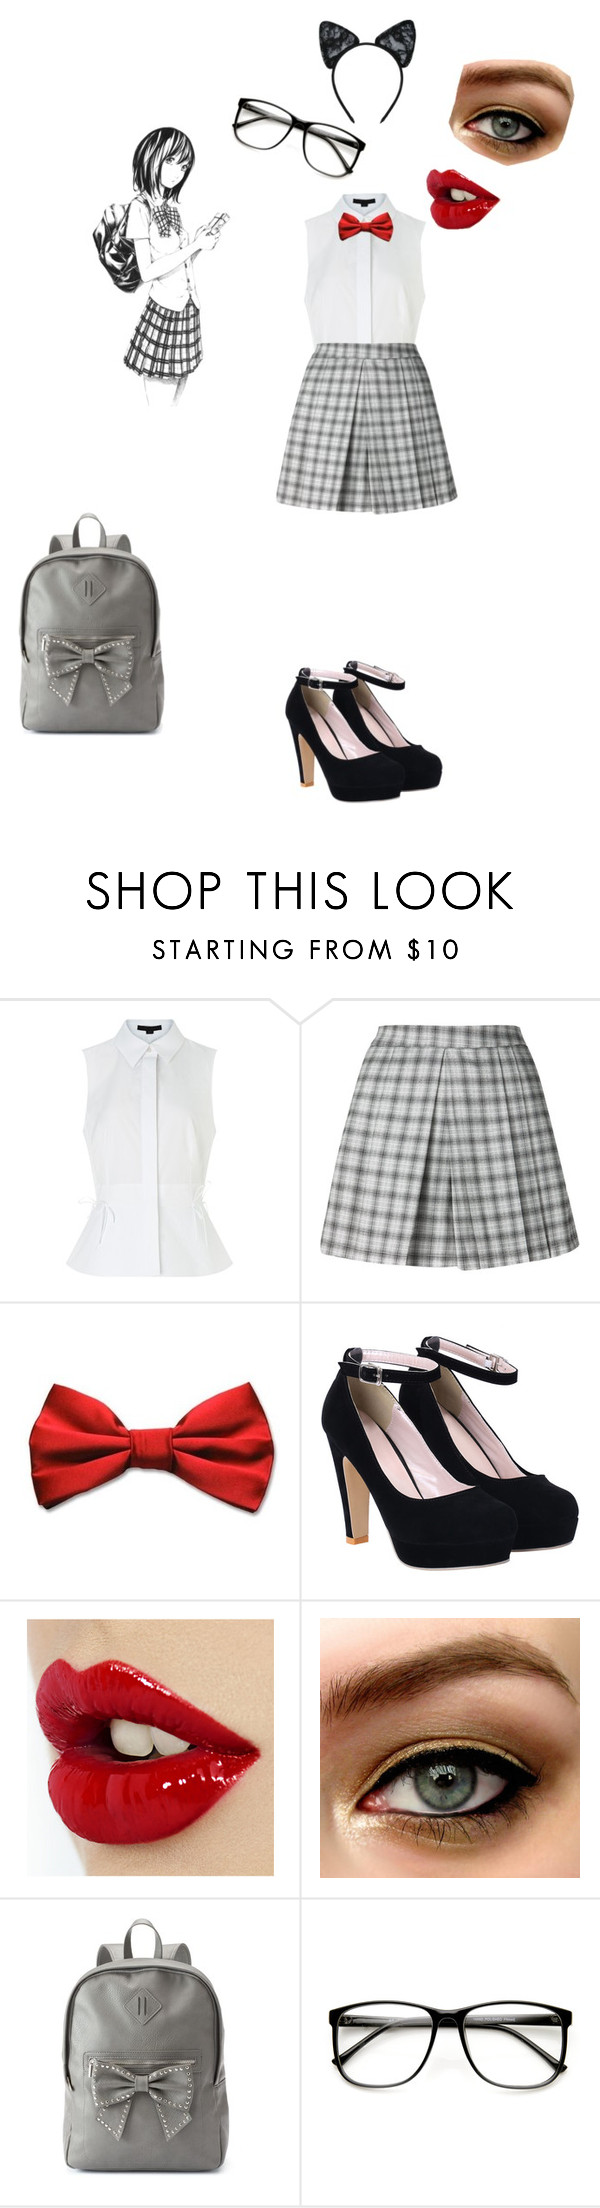 """""""Anime School Girl"""" by emilymedina on Polyvore featuring Alexander Wang, Candie's, Maison Close, women's clothing, women, female, woman, misses and juniors"""